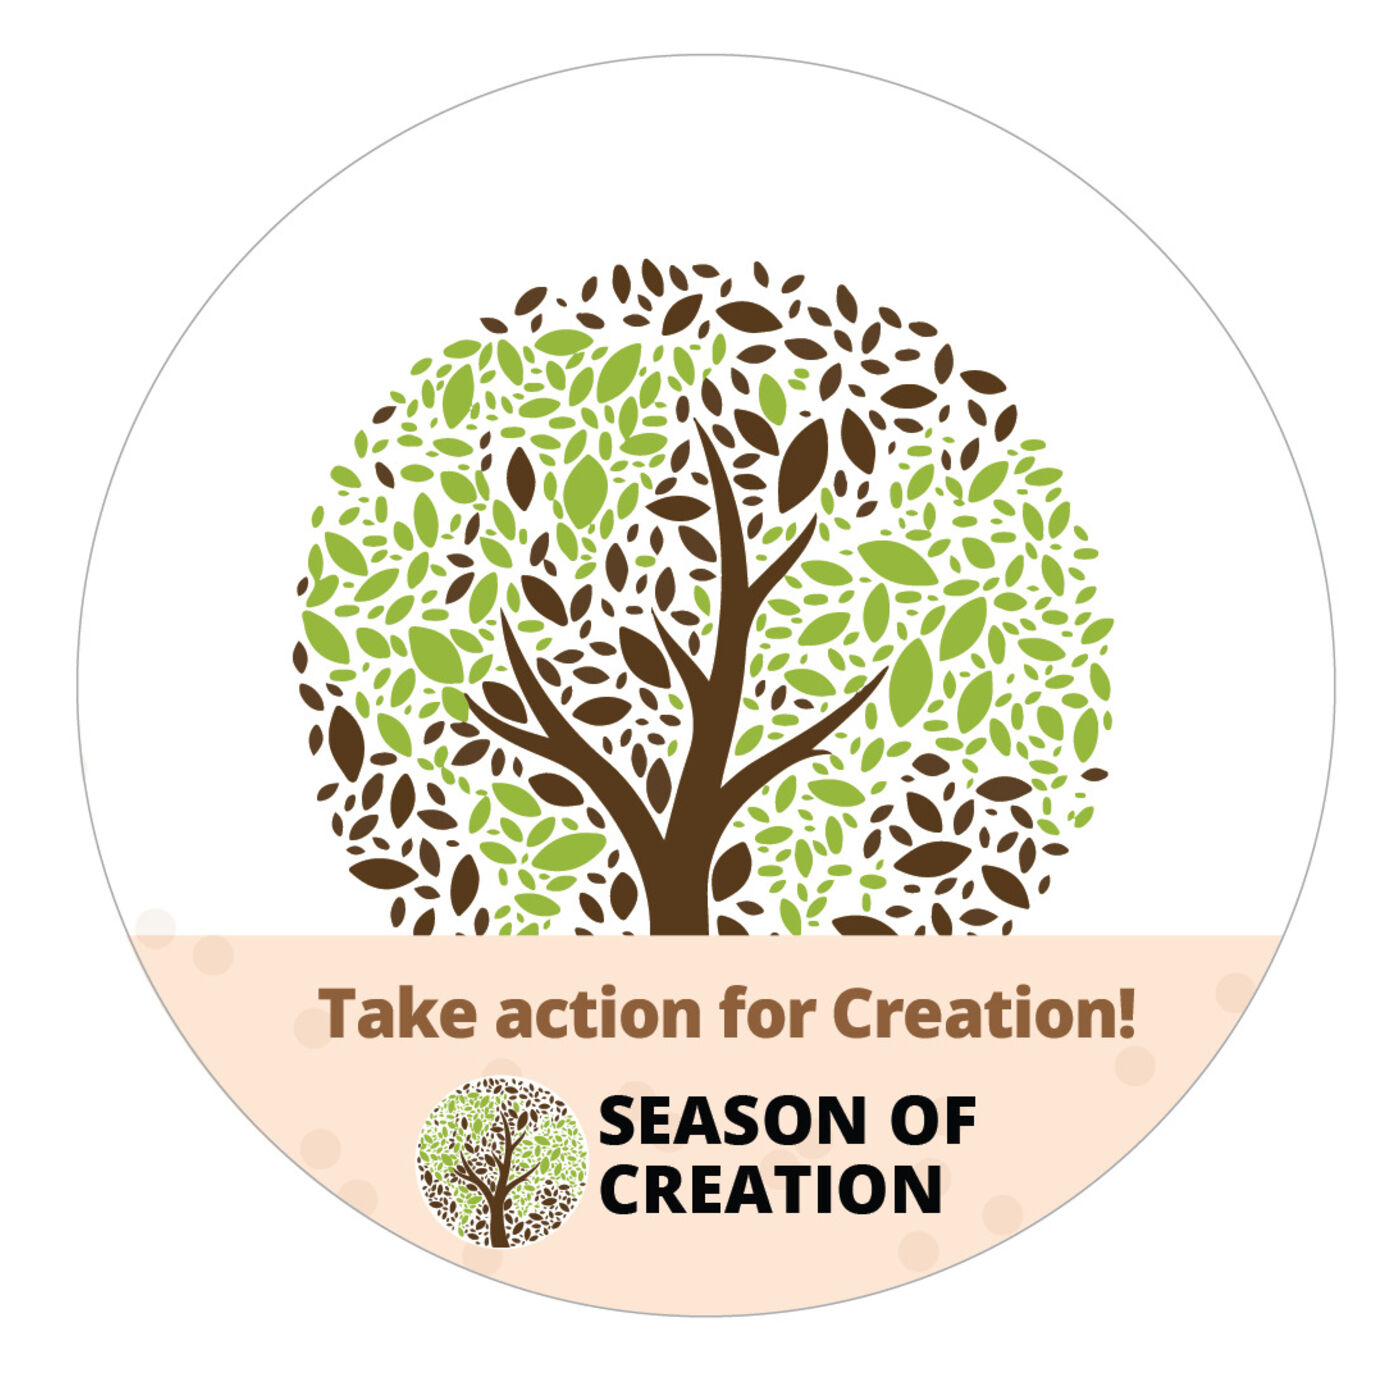 Missing the Mark in Mission or Living in Hope #SeasonofCreation